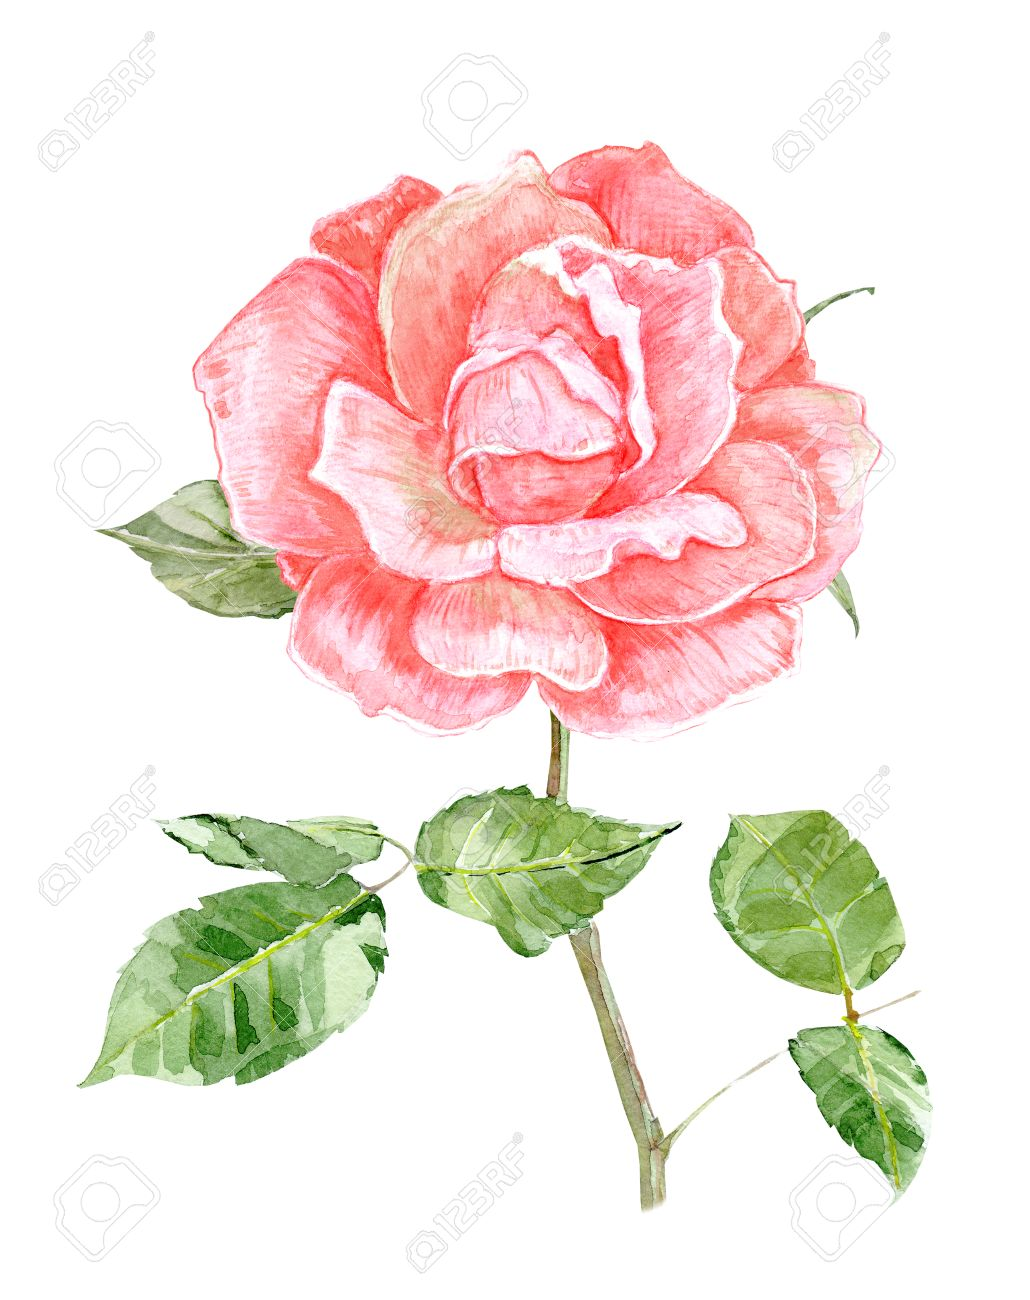 Pink Rose Flower For Your Design Watercolor Painting Stock Photo